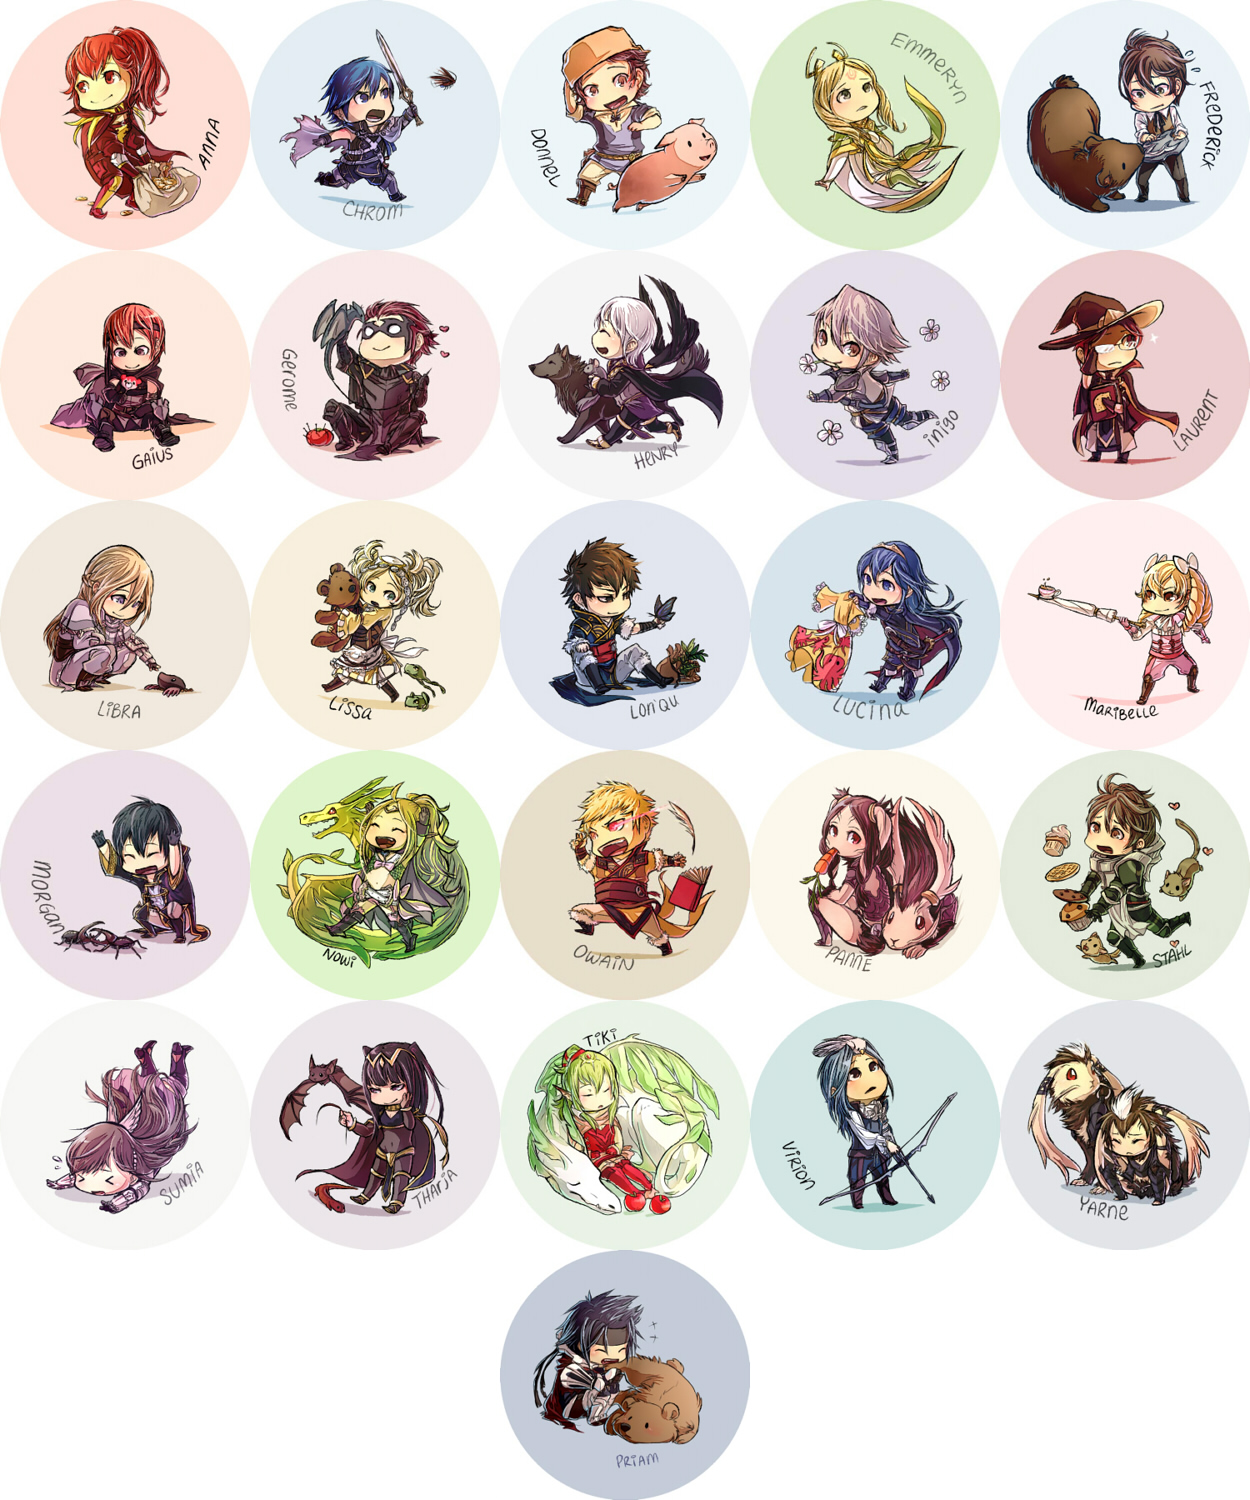 Fire Emblem Awakening Buttons [UPDATED] by hasuyawn